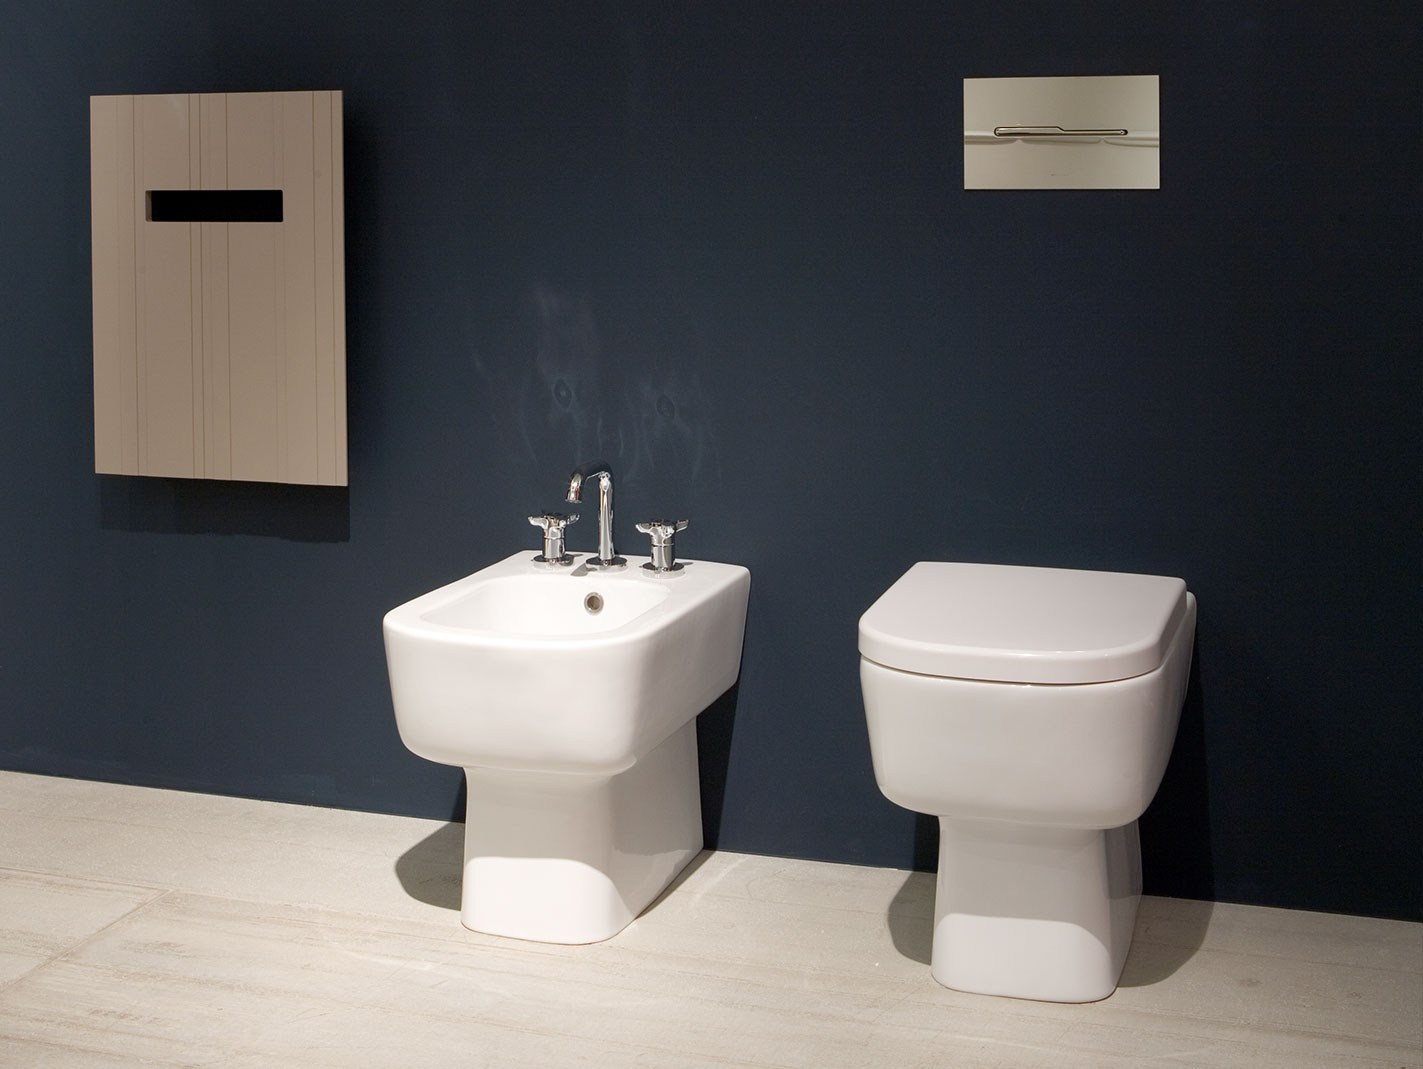 Wc Design what makes wall hung toilets special features you should